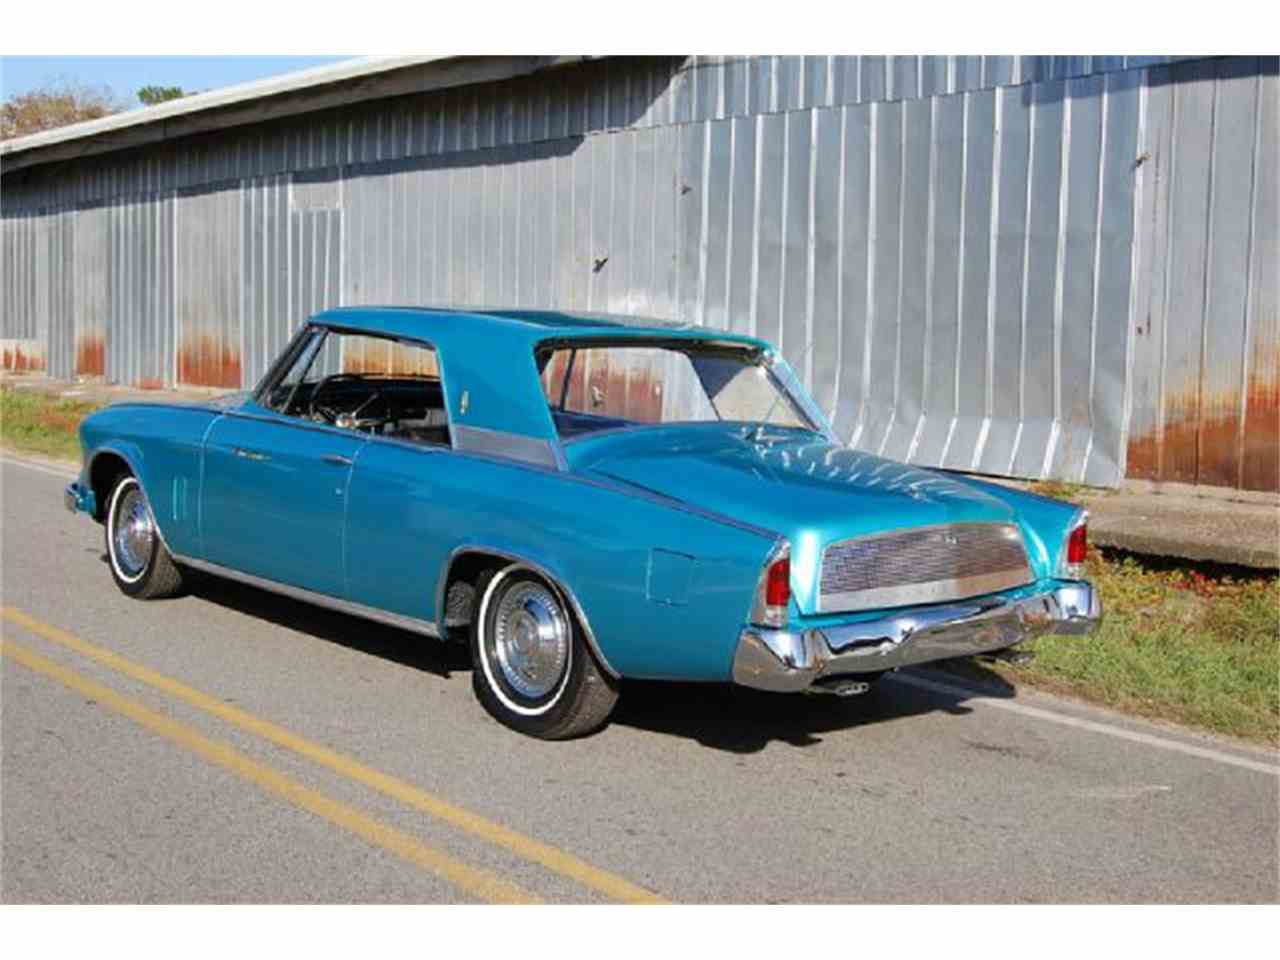 Large Picture of 1962 Studebaker Hawk located in St Simons Island Georgia - $10,900.00 - A8W0